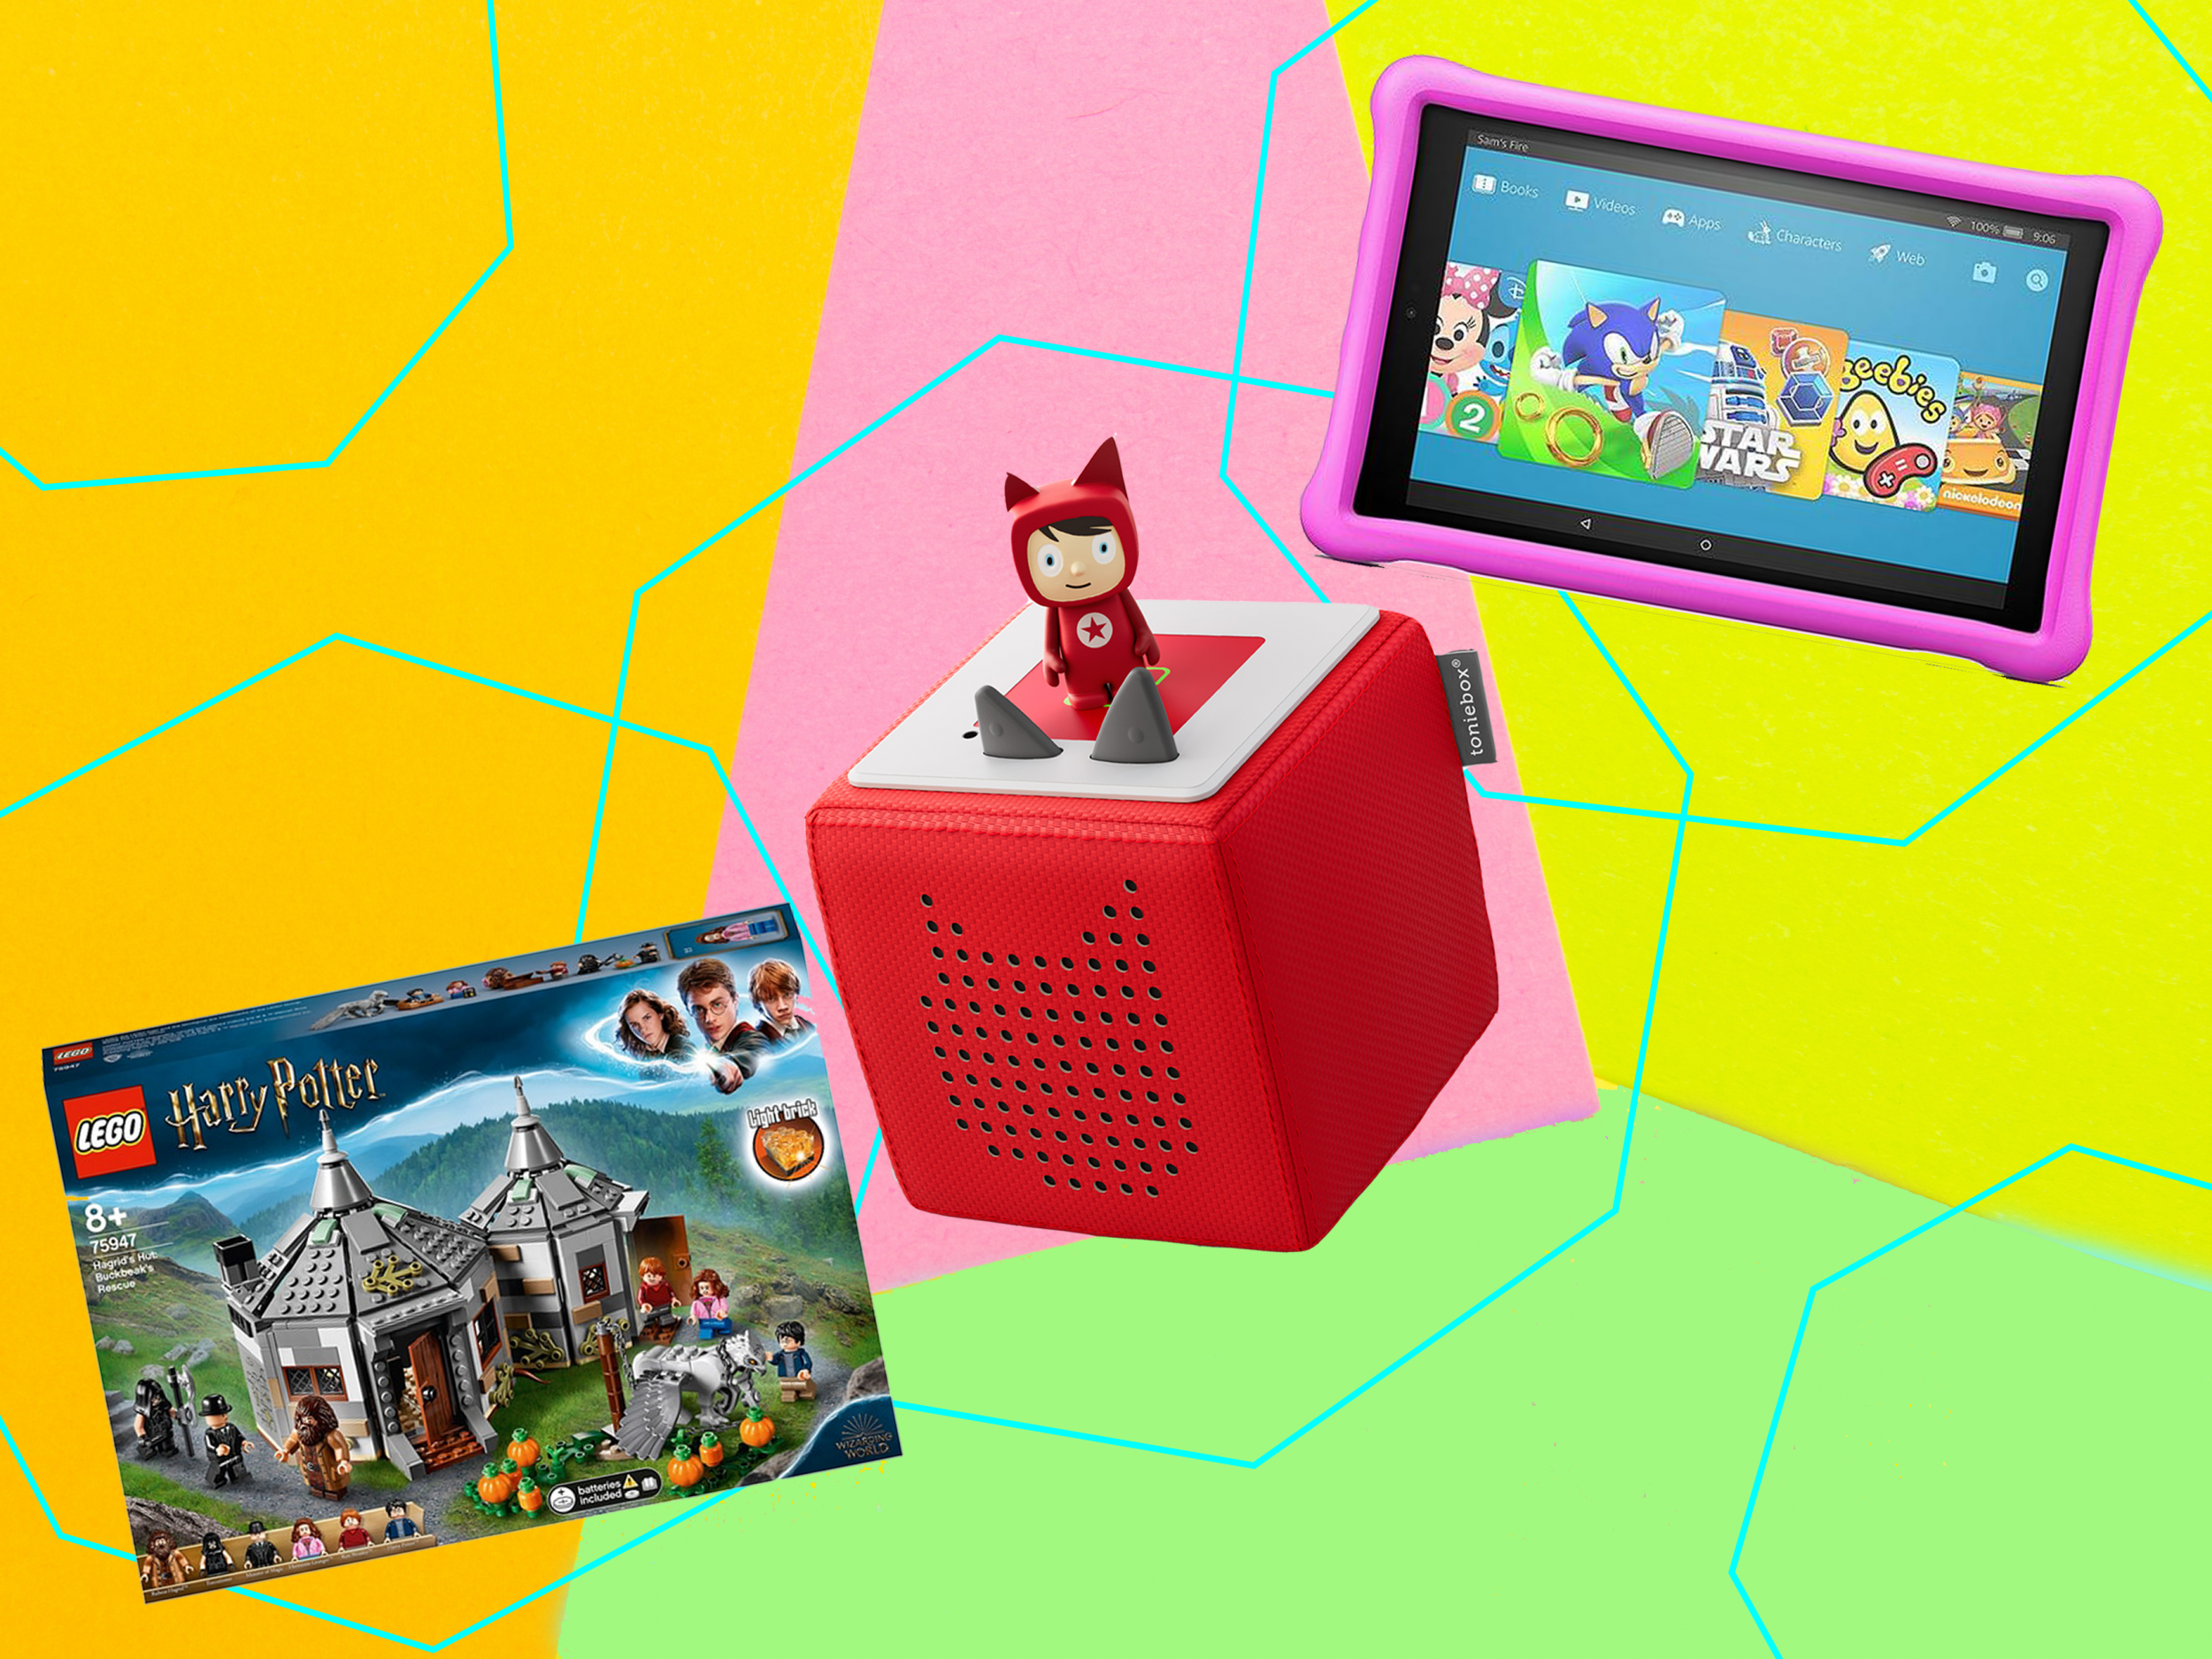 Cyber Monday kids' toys deals: Lego, Harry Potter, Frozen and more